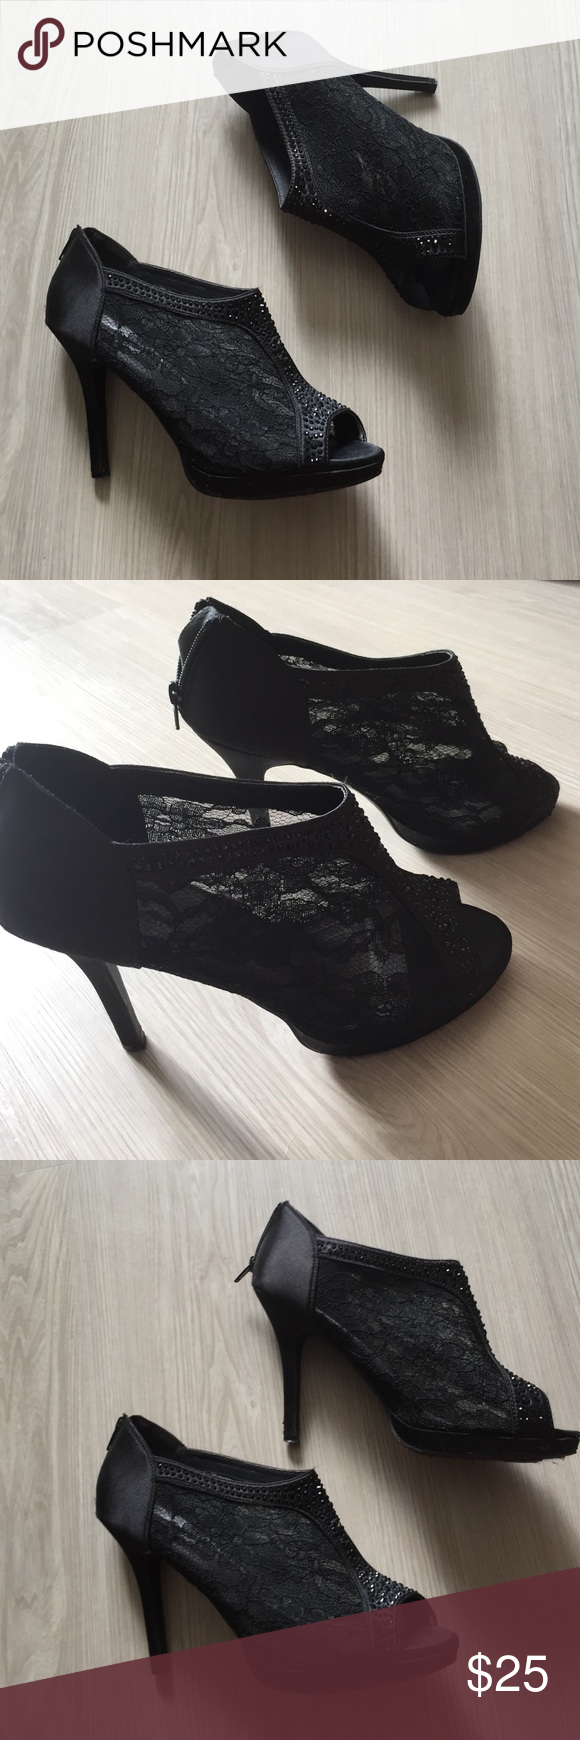 Daytrip Black Lace Heel Version 2 These are just like the previous ones I listed, but the design is different! I bought them both in size 10 thinking they'd fit alright, but they're sort of loose. Like new! Daytrip Shoes Heels